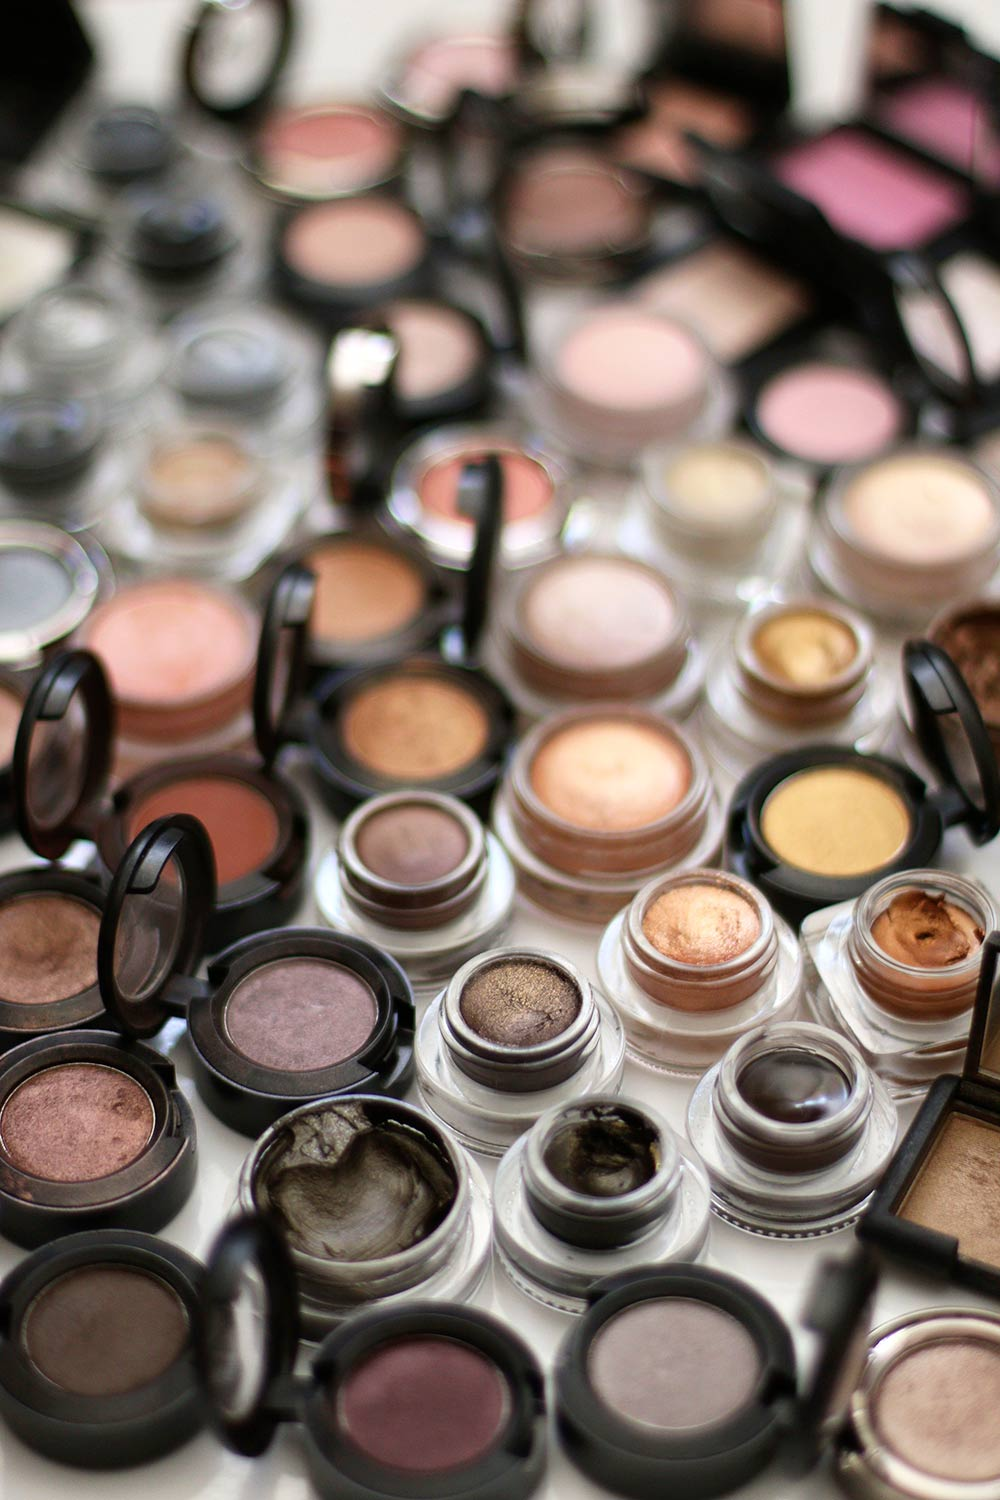 Makeup You Should Never (Ever) Wear on Your WeddingDay